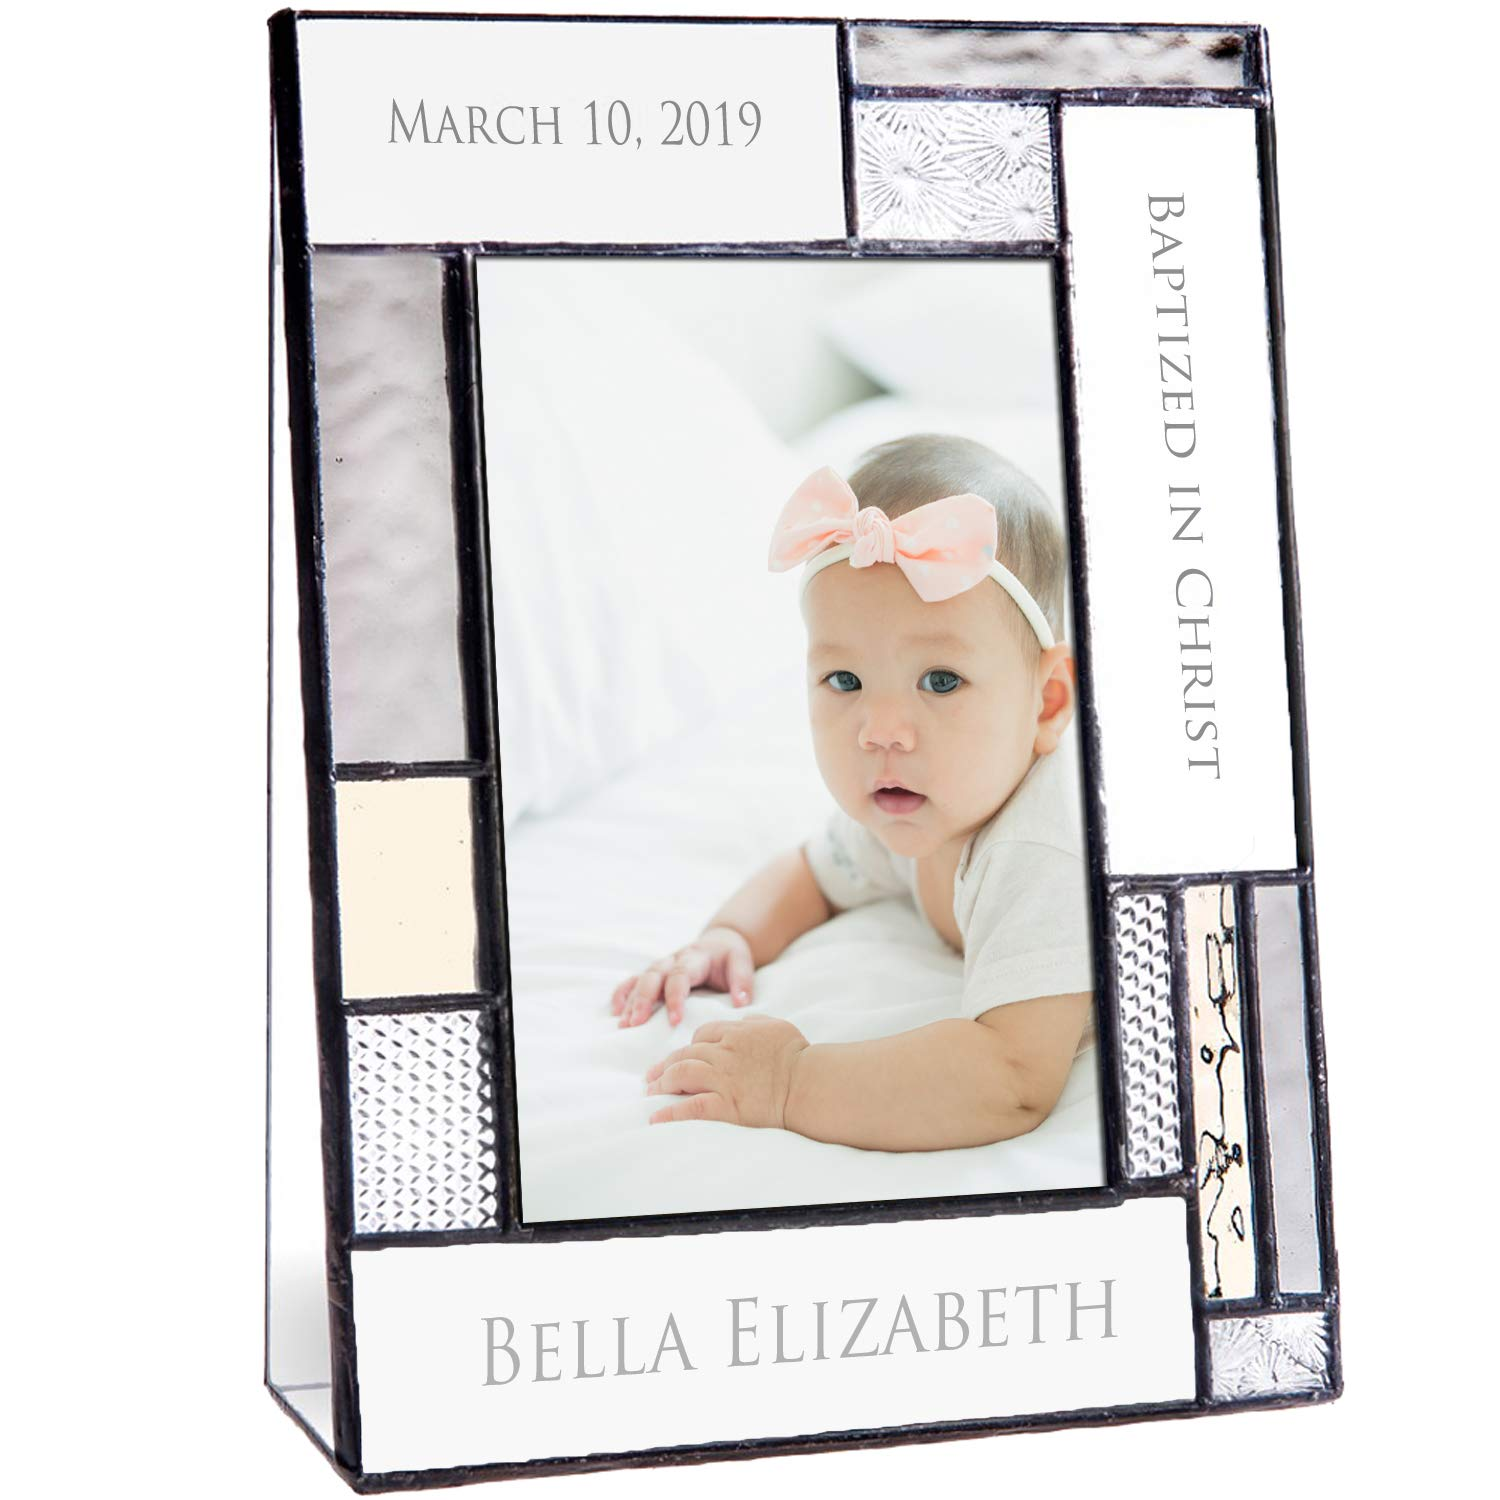 Baptism Gifts for Girls Or Boys Personalized Picture Frame Custom Engraved Glass 4x6 Vertical Photo Grey and Antique Yellow J Devlin Pic 392-46V EP615